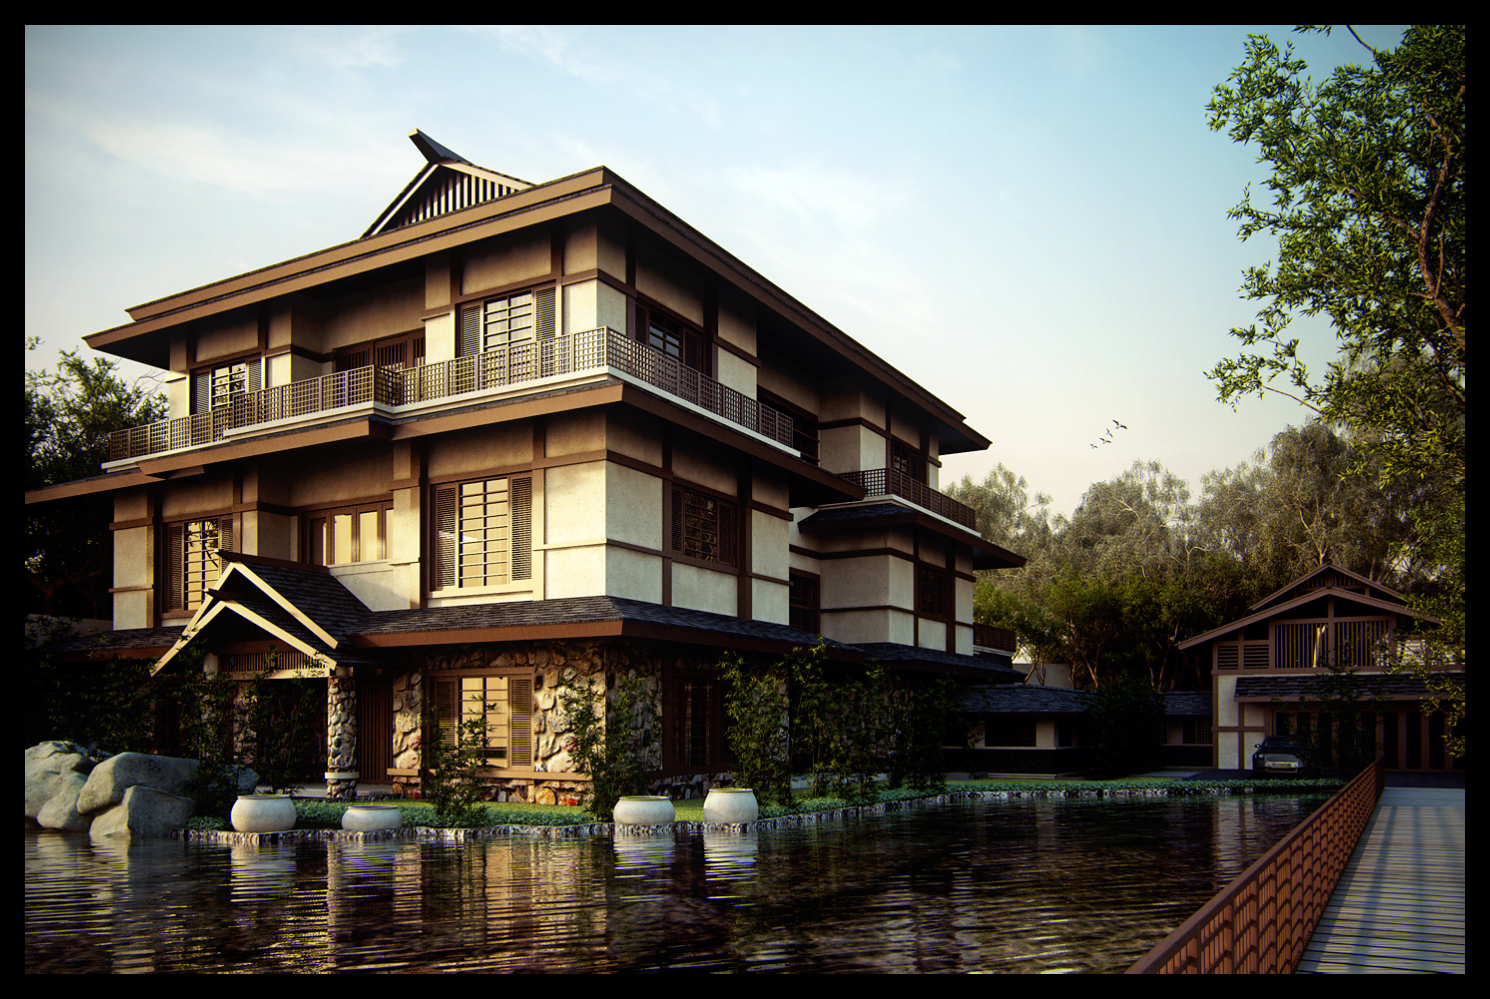 Japanese House By Neellss On Deviantart